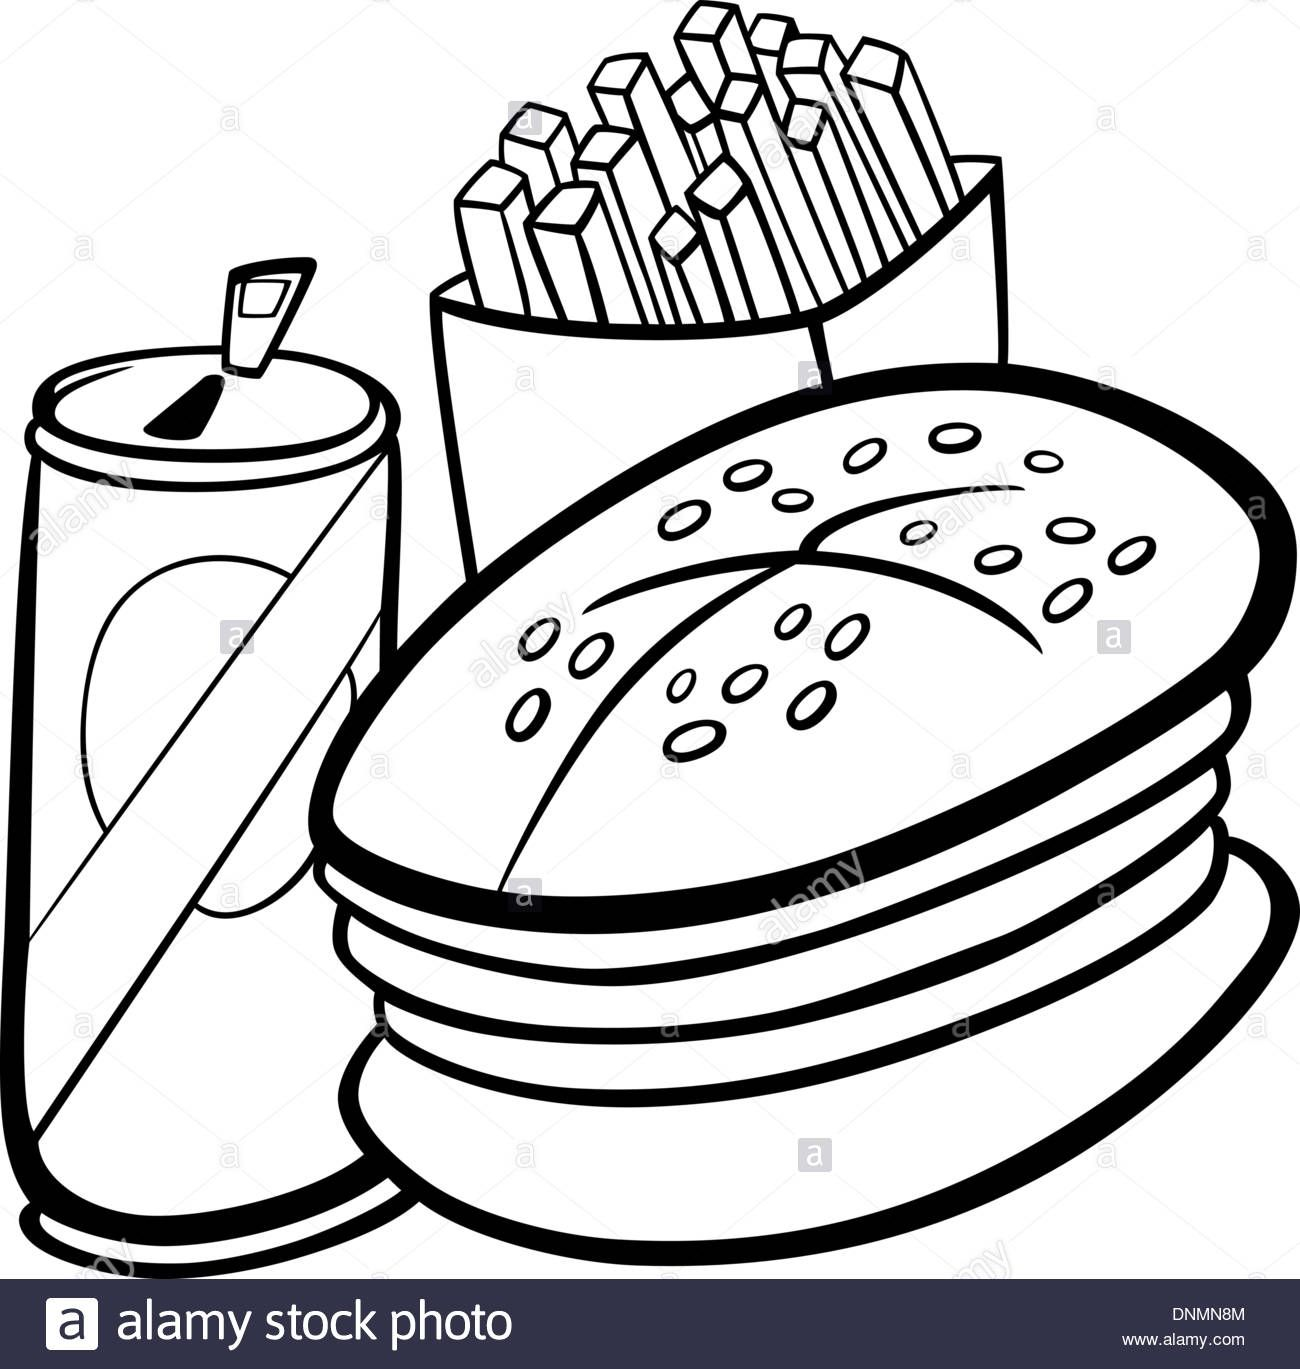 19++ Hot dog clipart black and white ideas